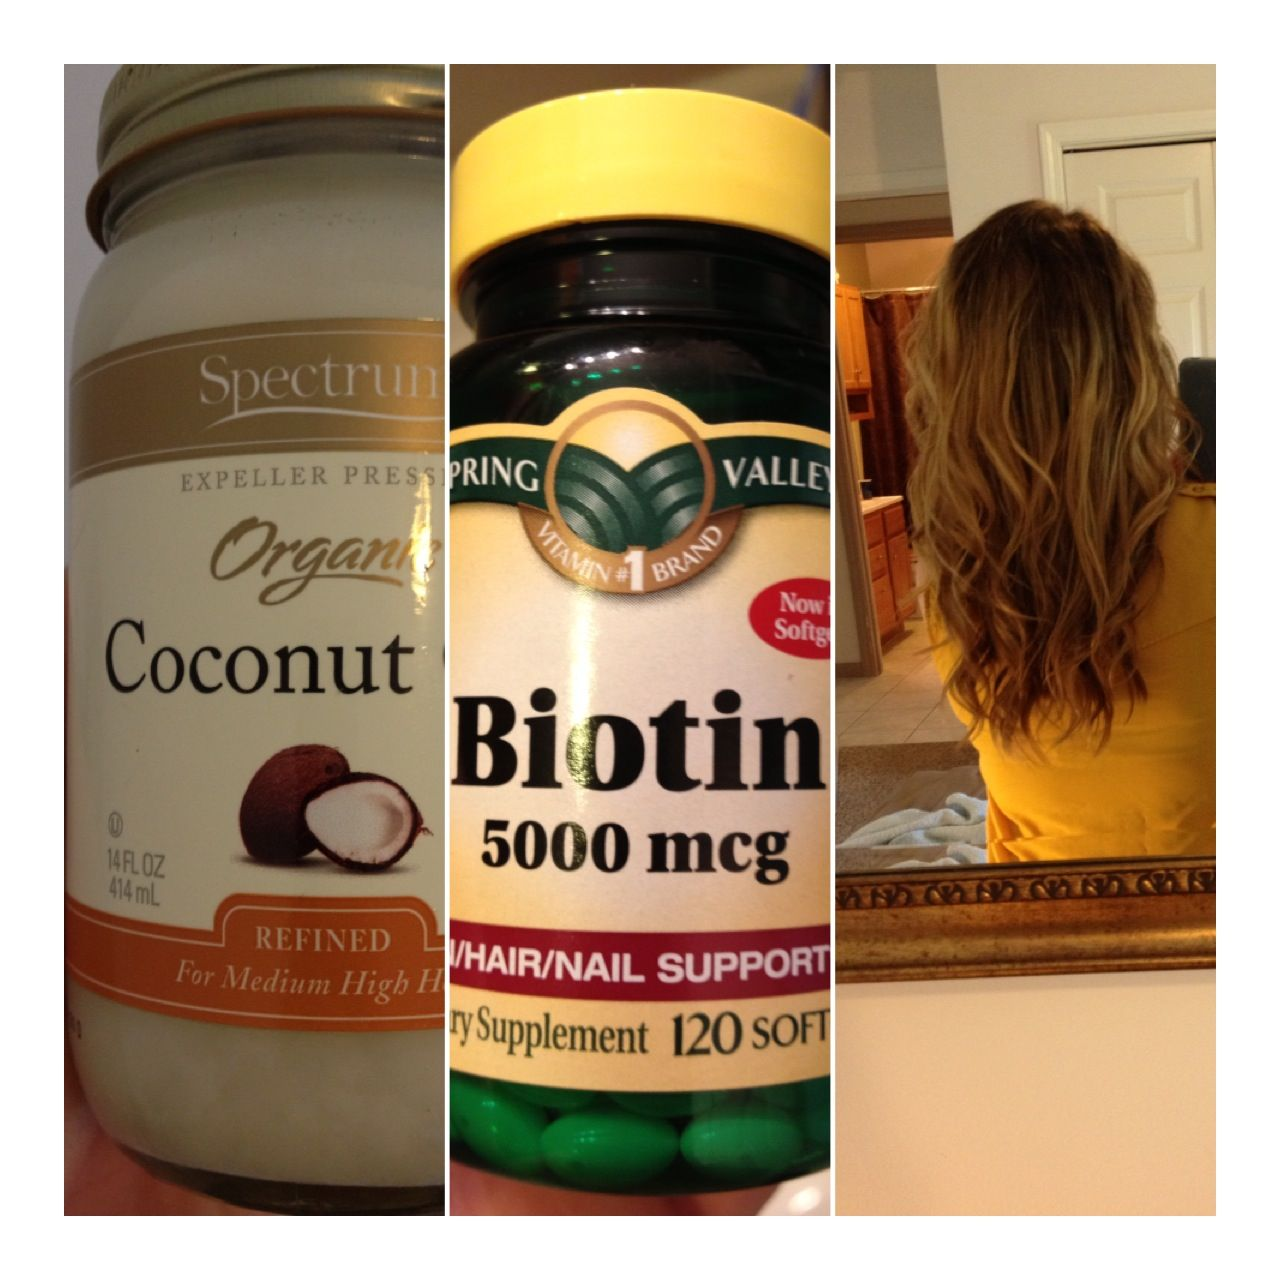 Diy Hair Mask Coconut Oil Coconut Oil Hair Mask Once A Week 43 Biotin Capsules Daily